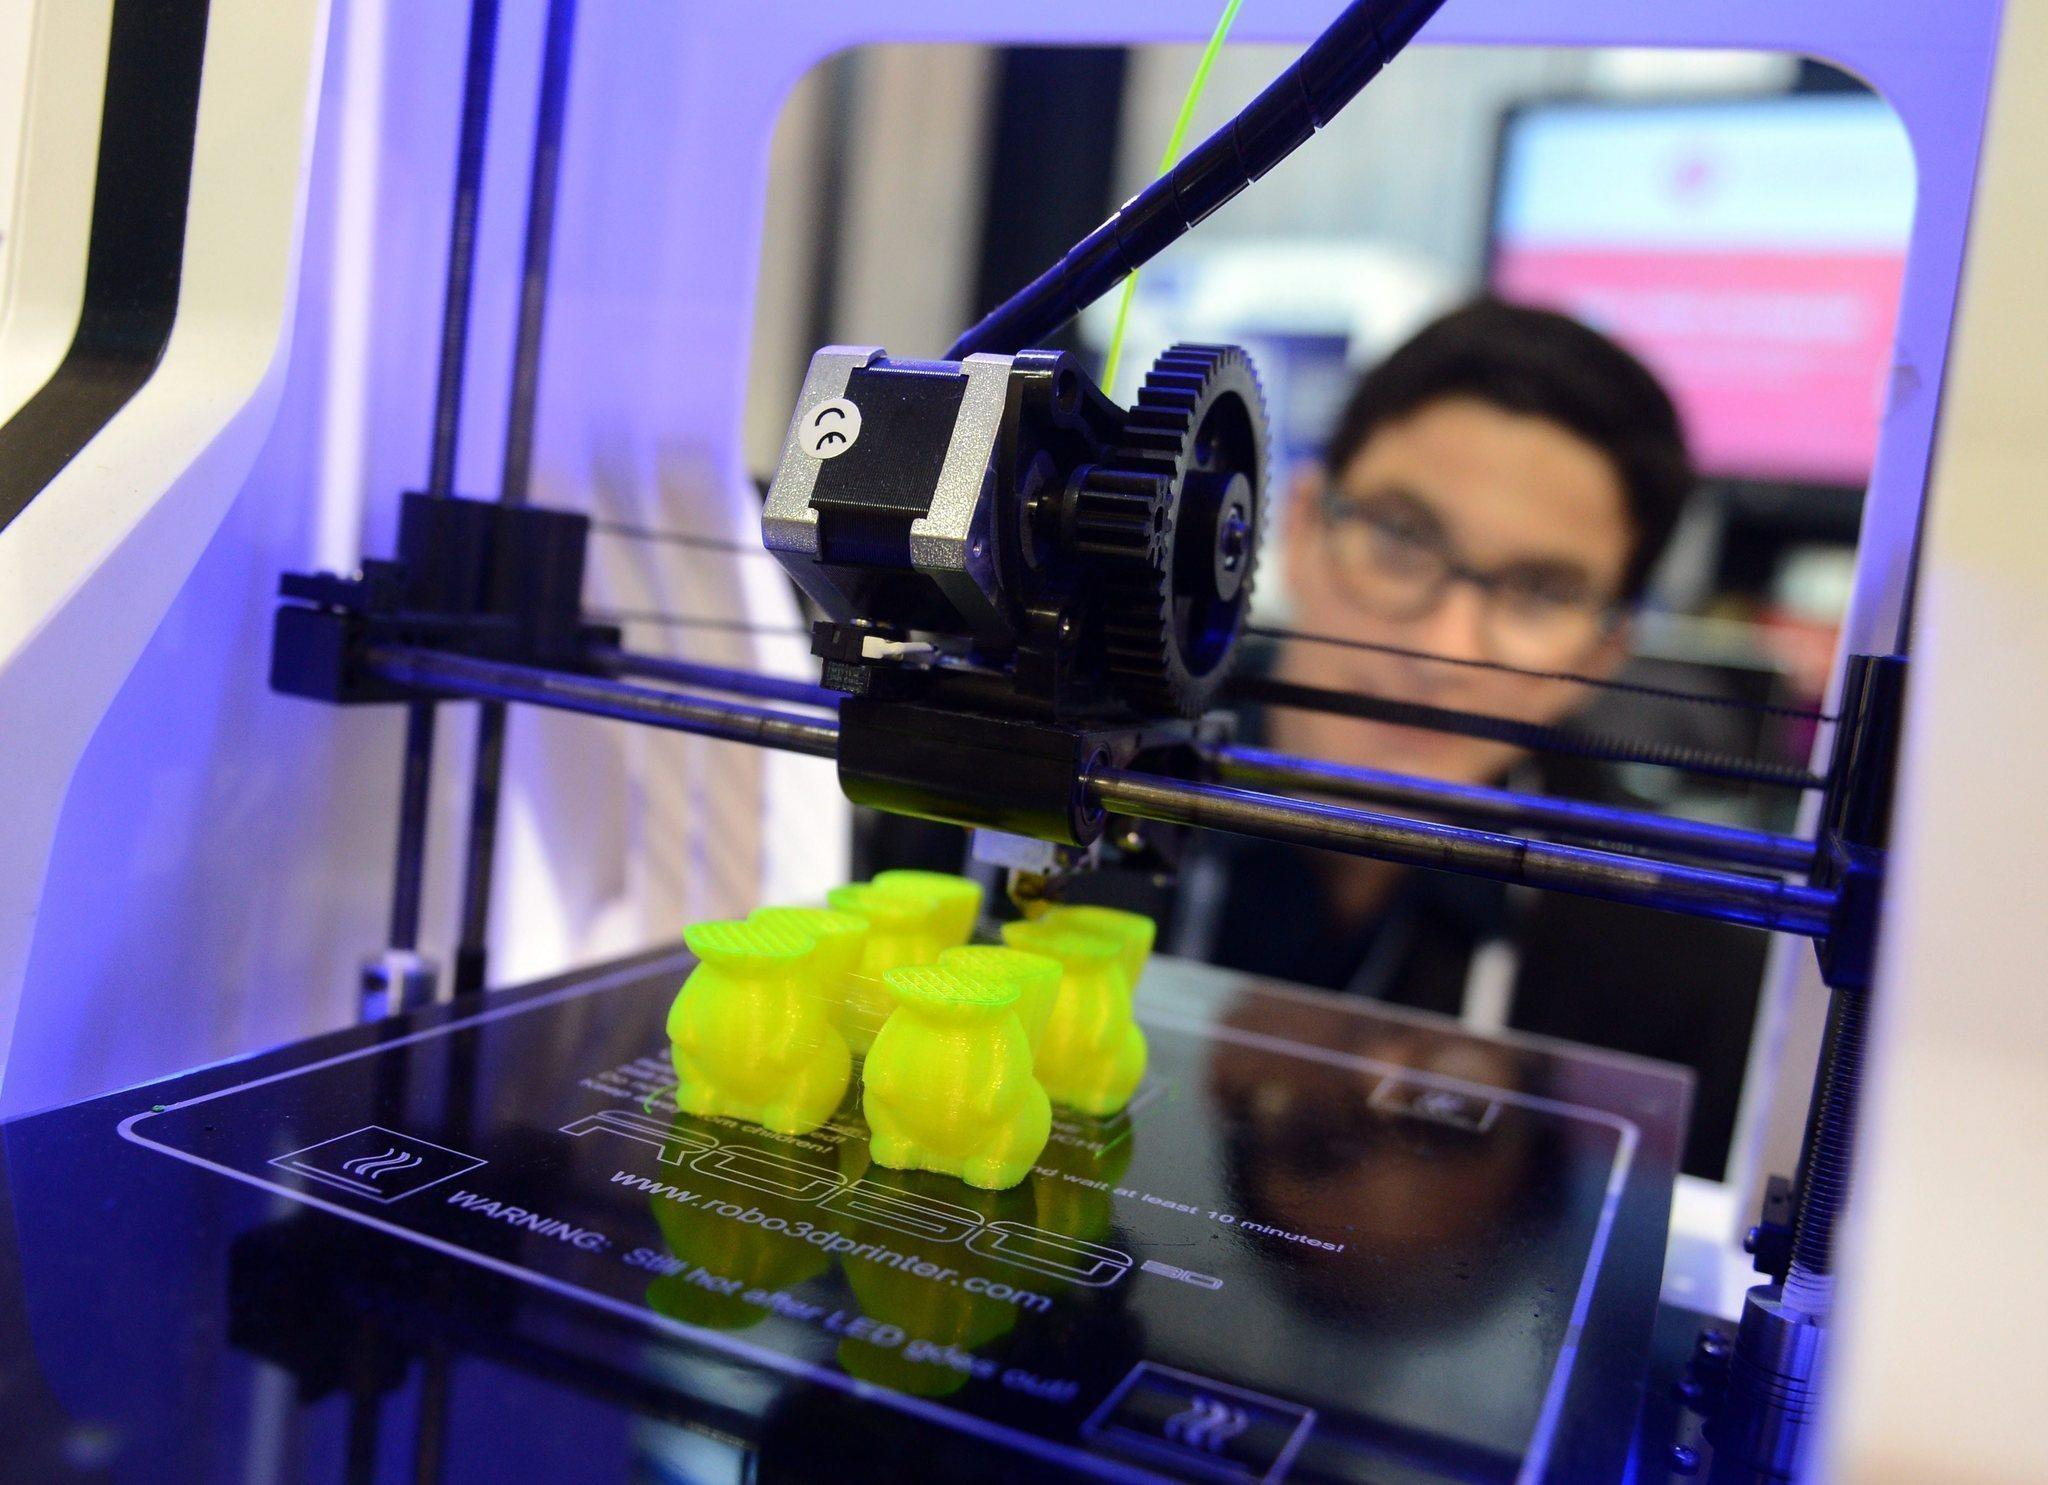 Items are printed with a 3D printer at the Robo3D company stand at the 2014 Consumer Electronics Show in Las Vegas.